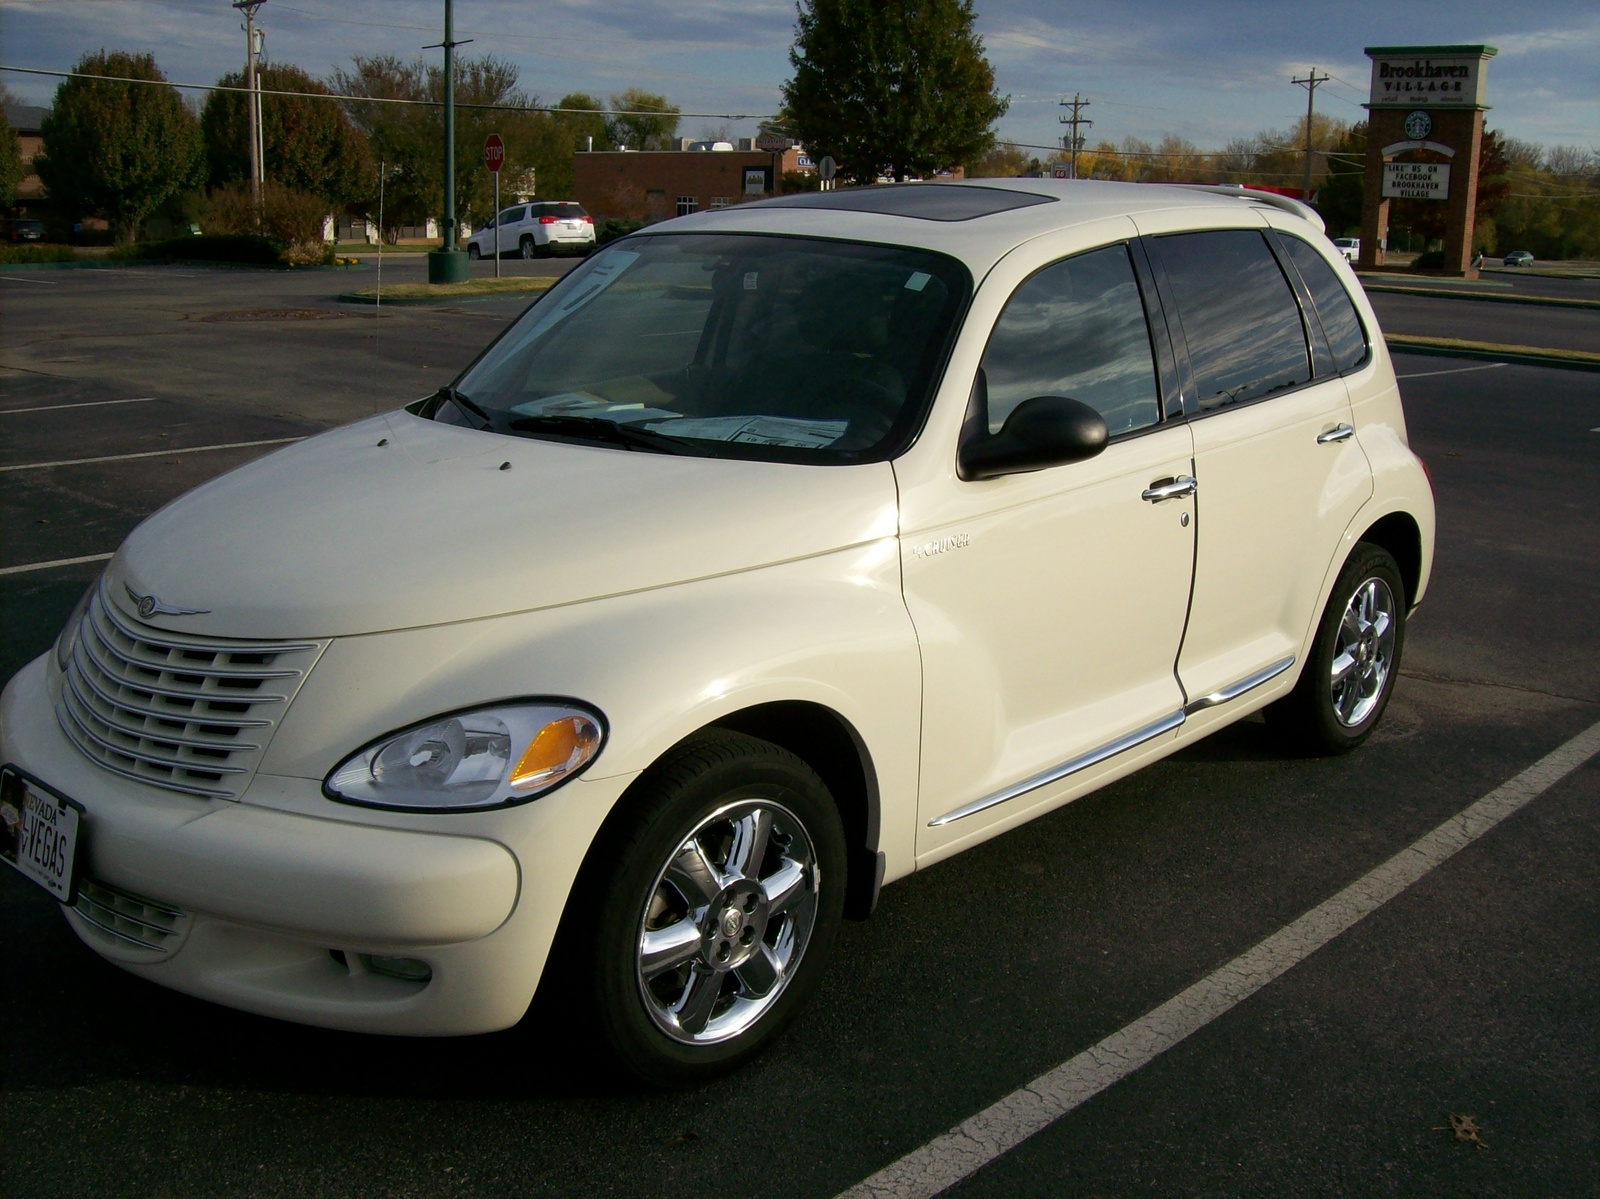 2005 chrysler pt cruiser pictures cargurus. Black Bedroom Furniture Sets. Home Design Ideas